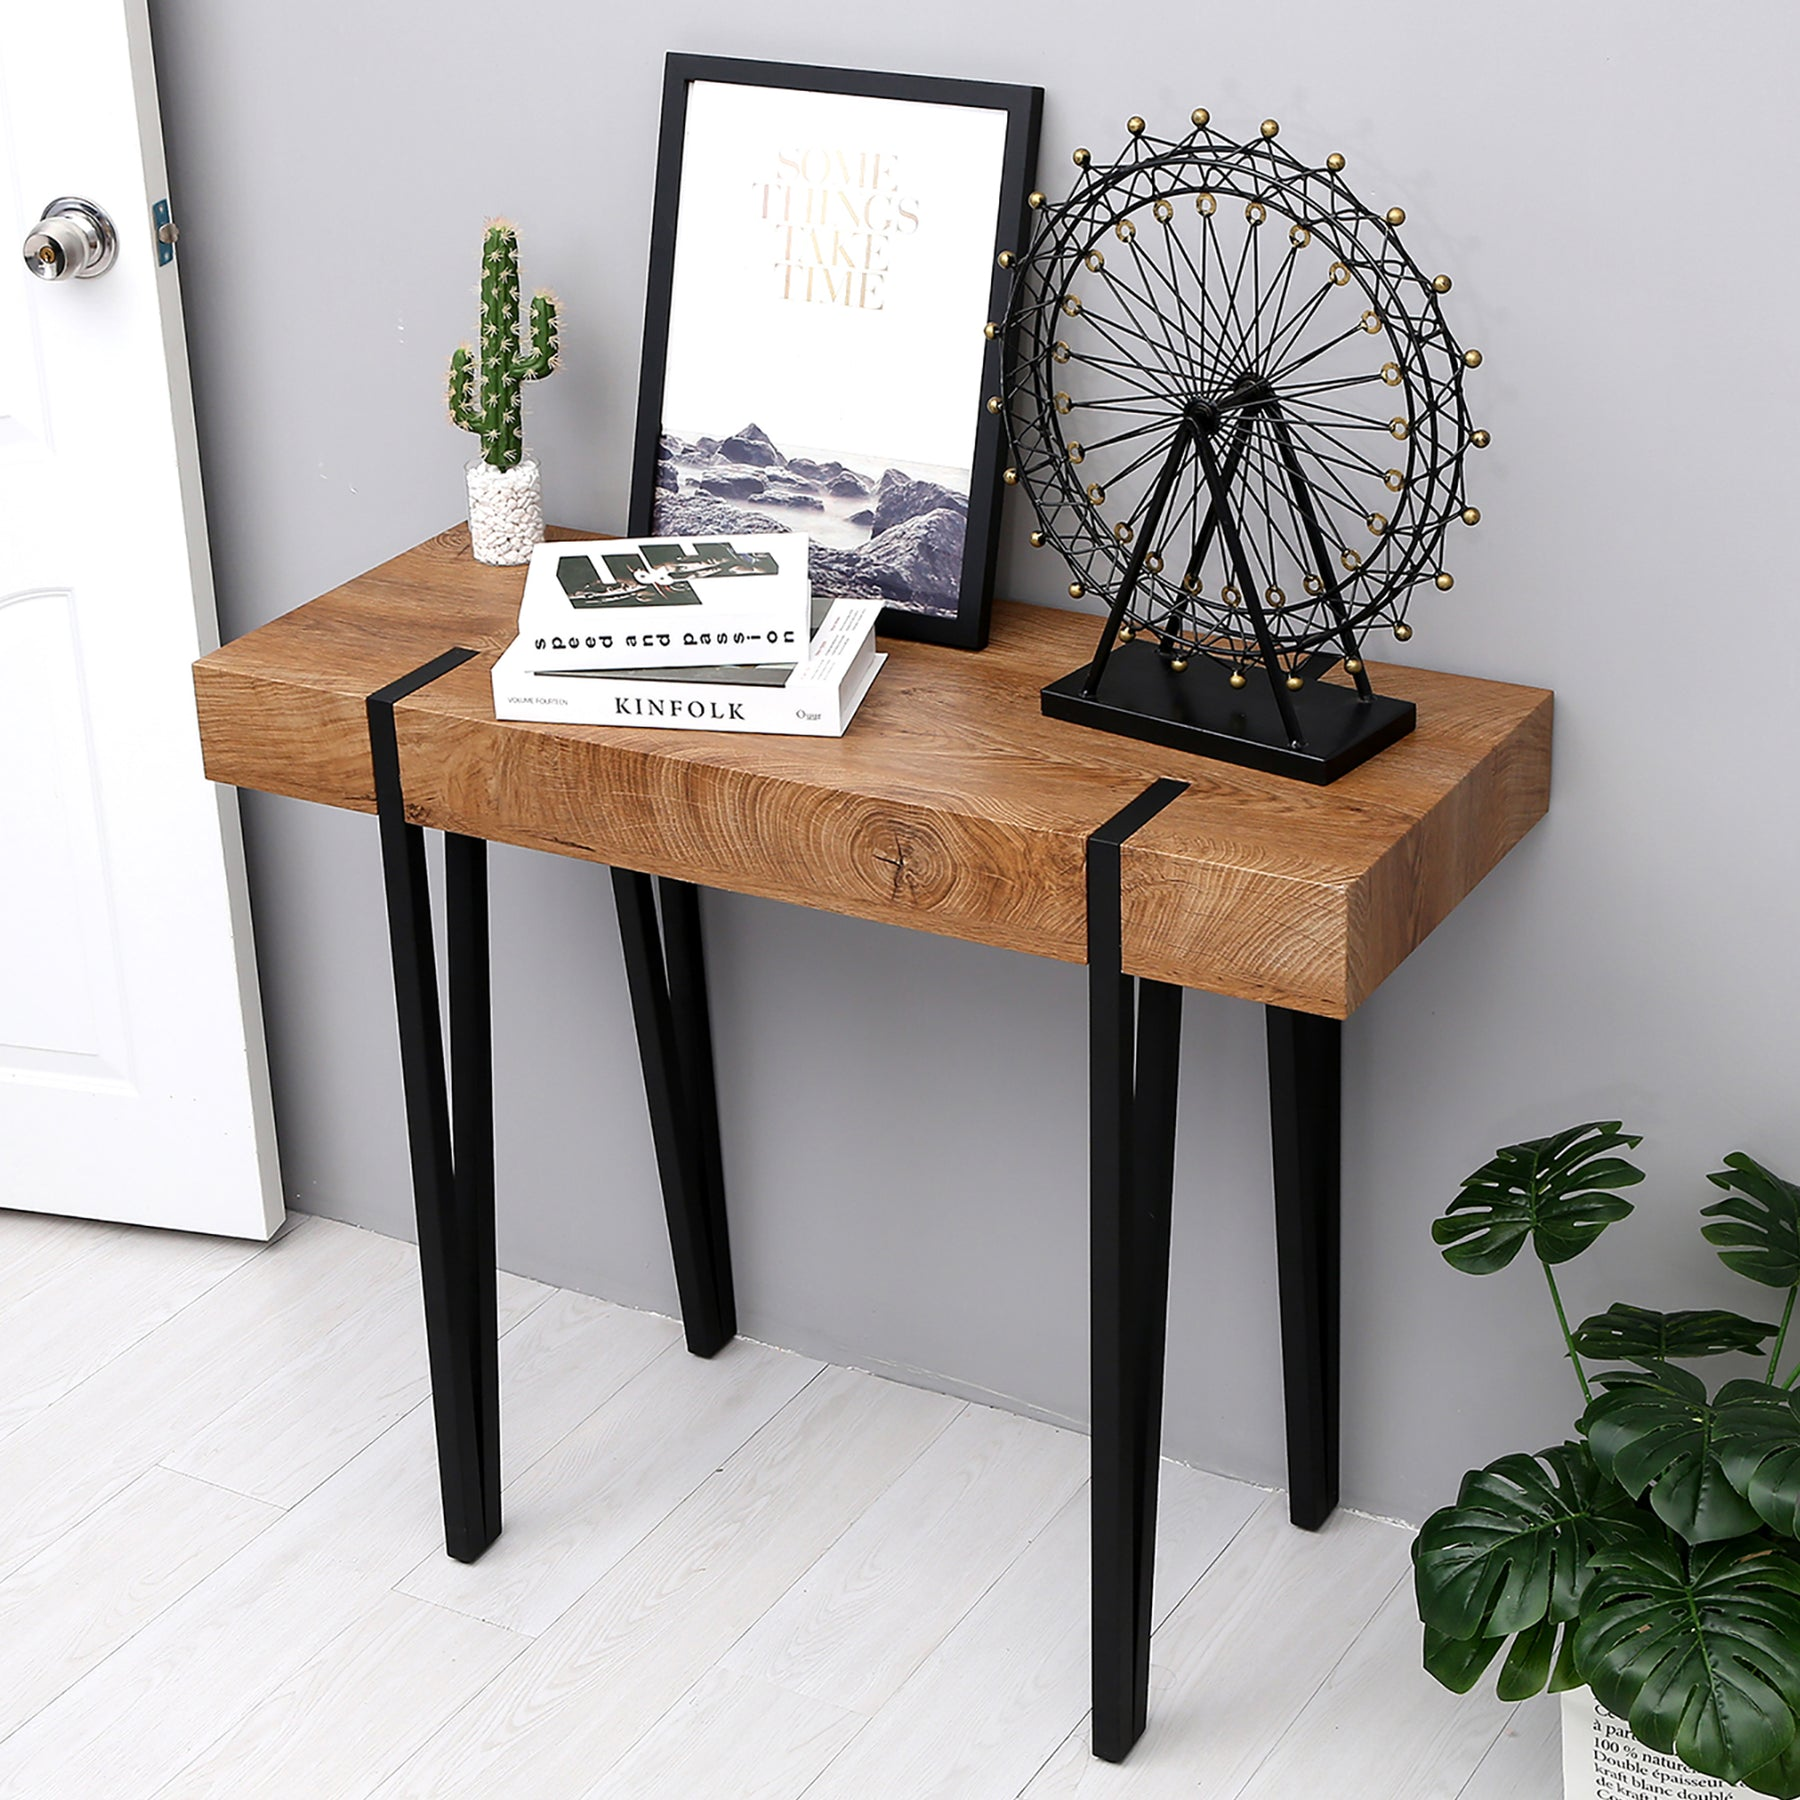 buy popular 58db7 d2c45 Mcombo Modern Industrial console table Farmhouse Metal Frame Rustic Modern  Wood Table for Entryway Living Room 6090-KAPER-WT